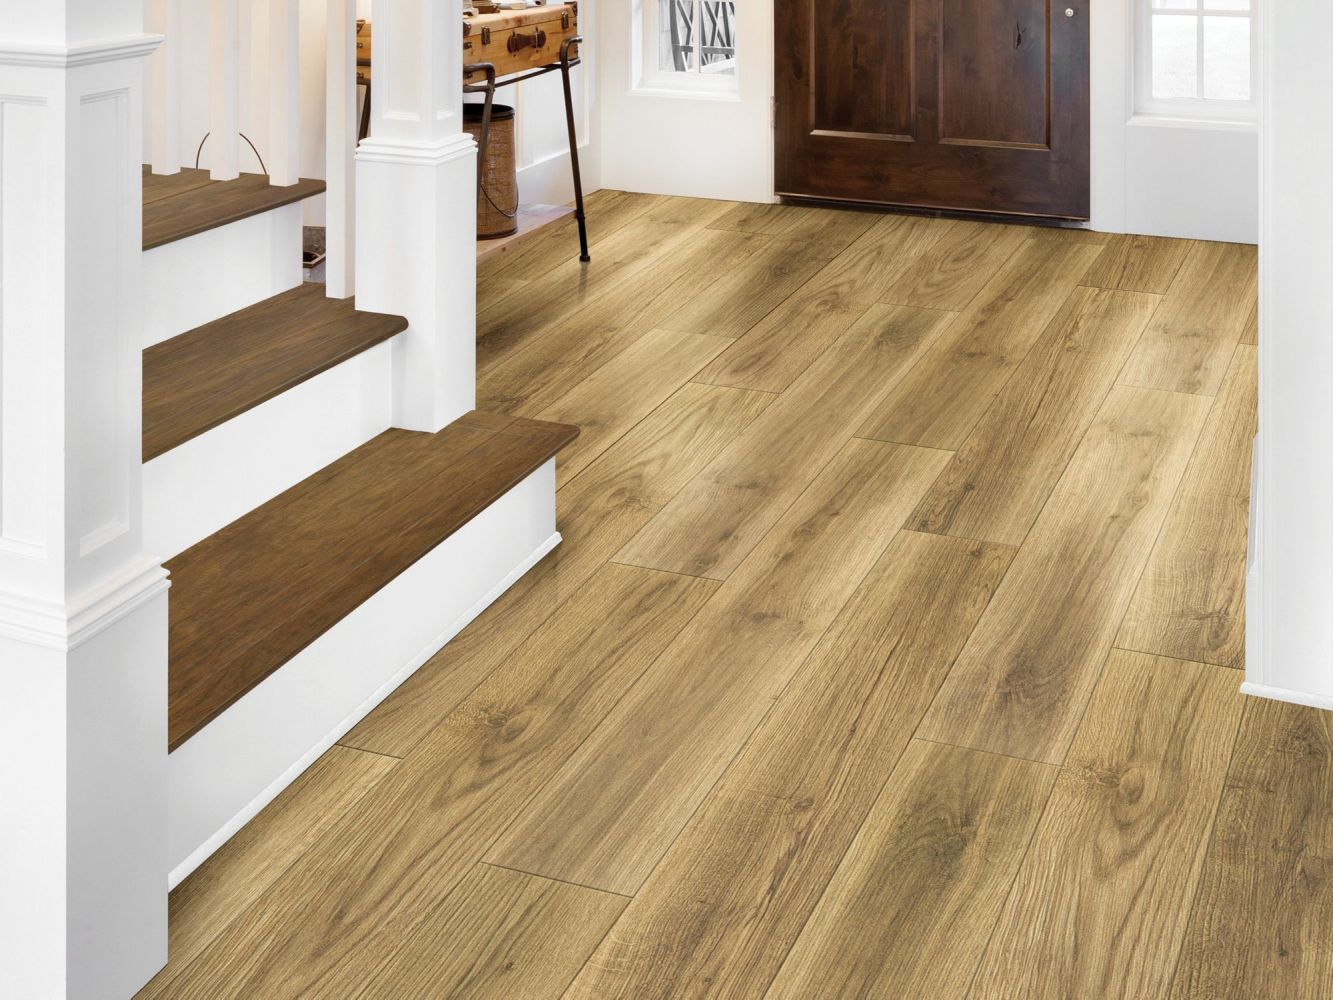 Shaw Floors Dr Horton Hampton Plus Tesora 07057_DR012